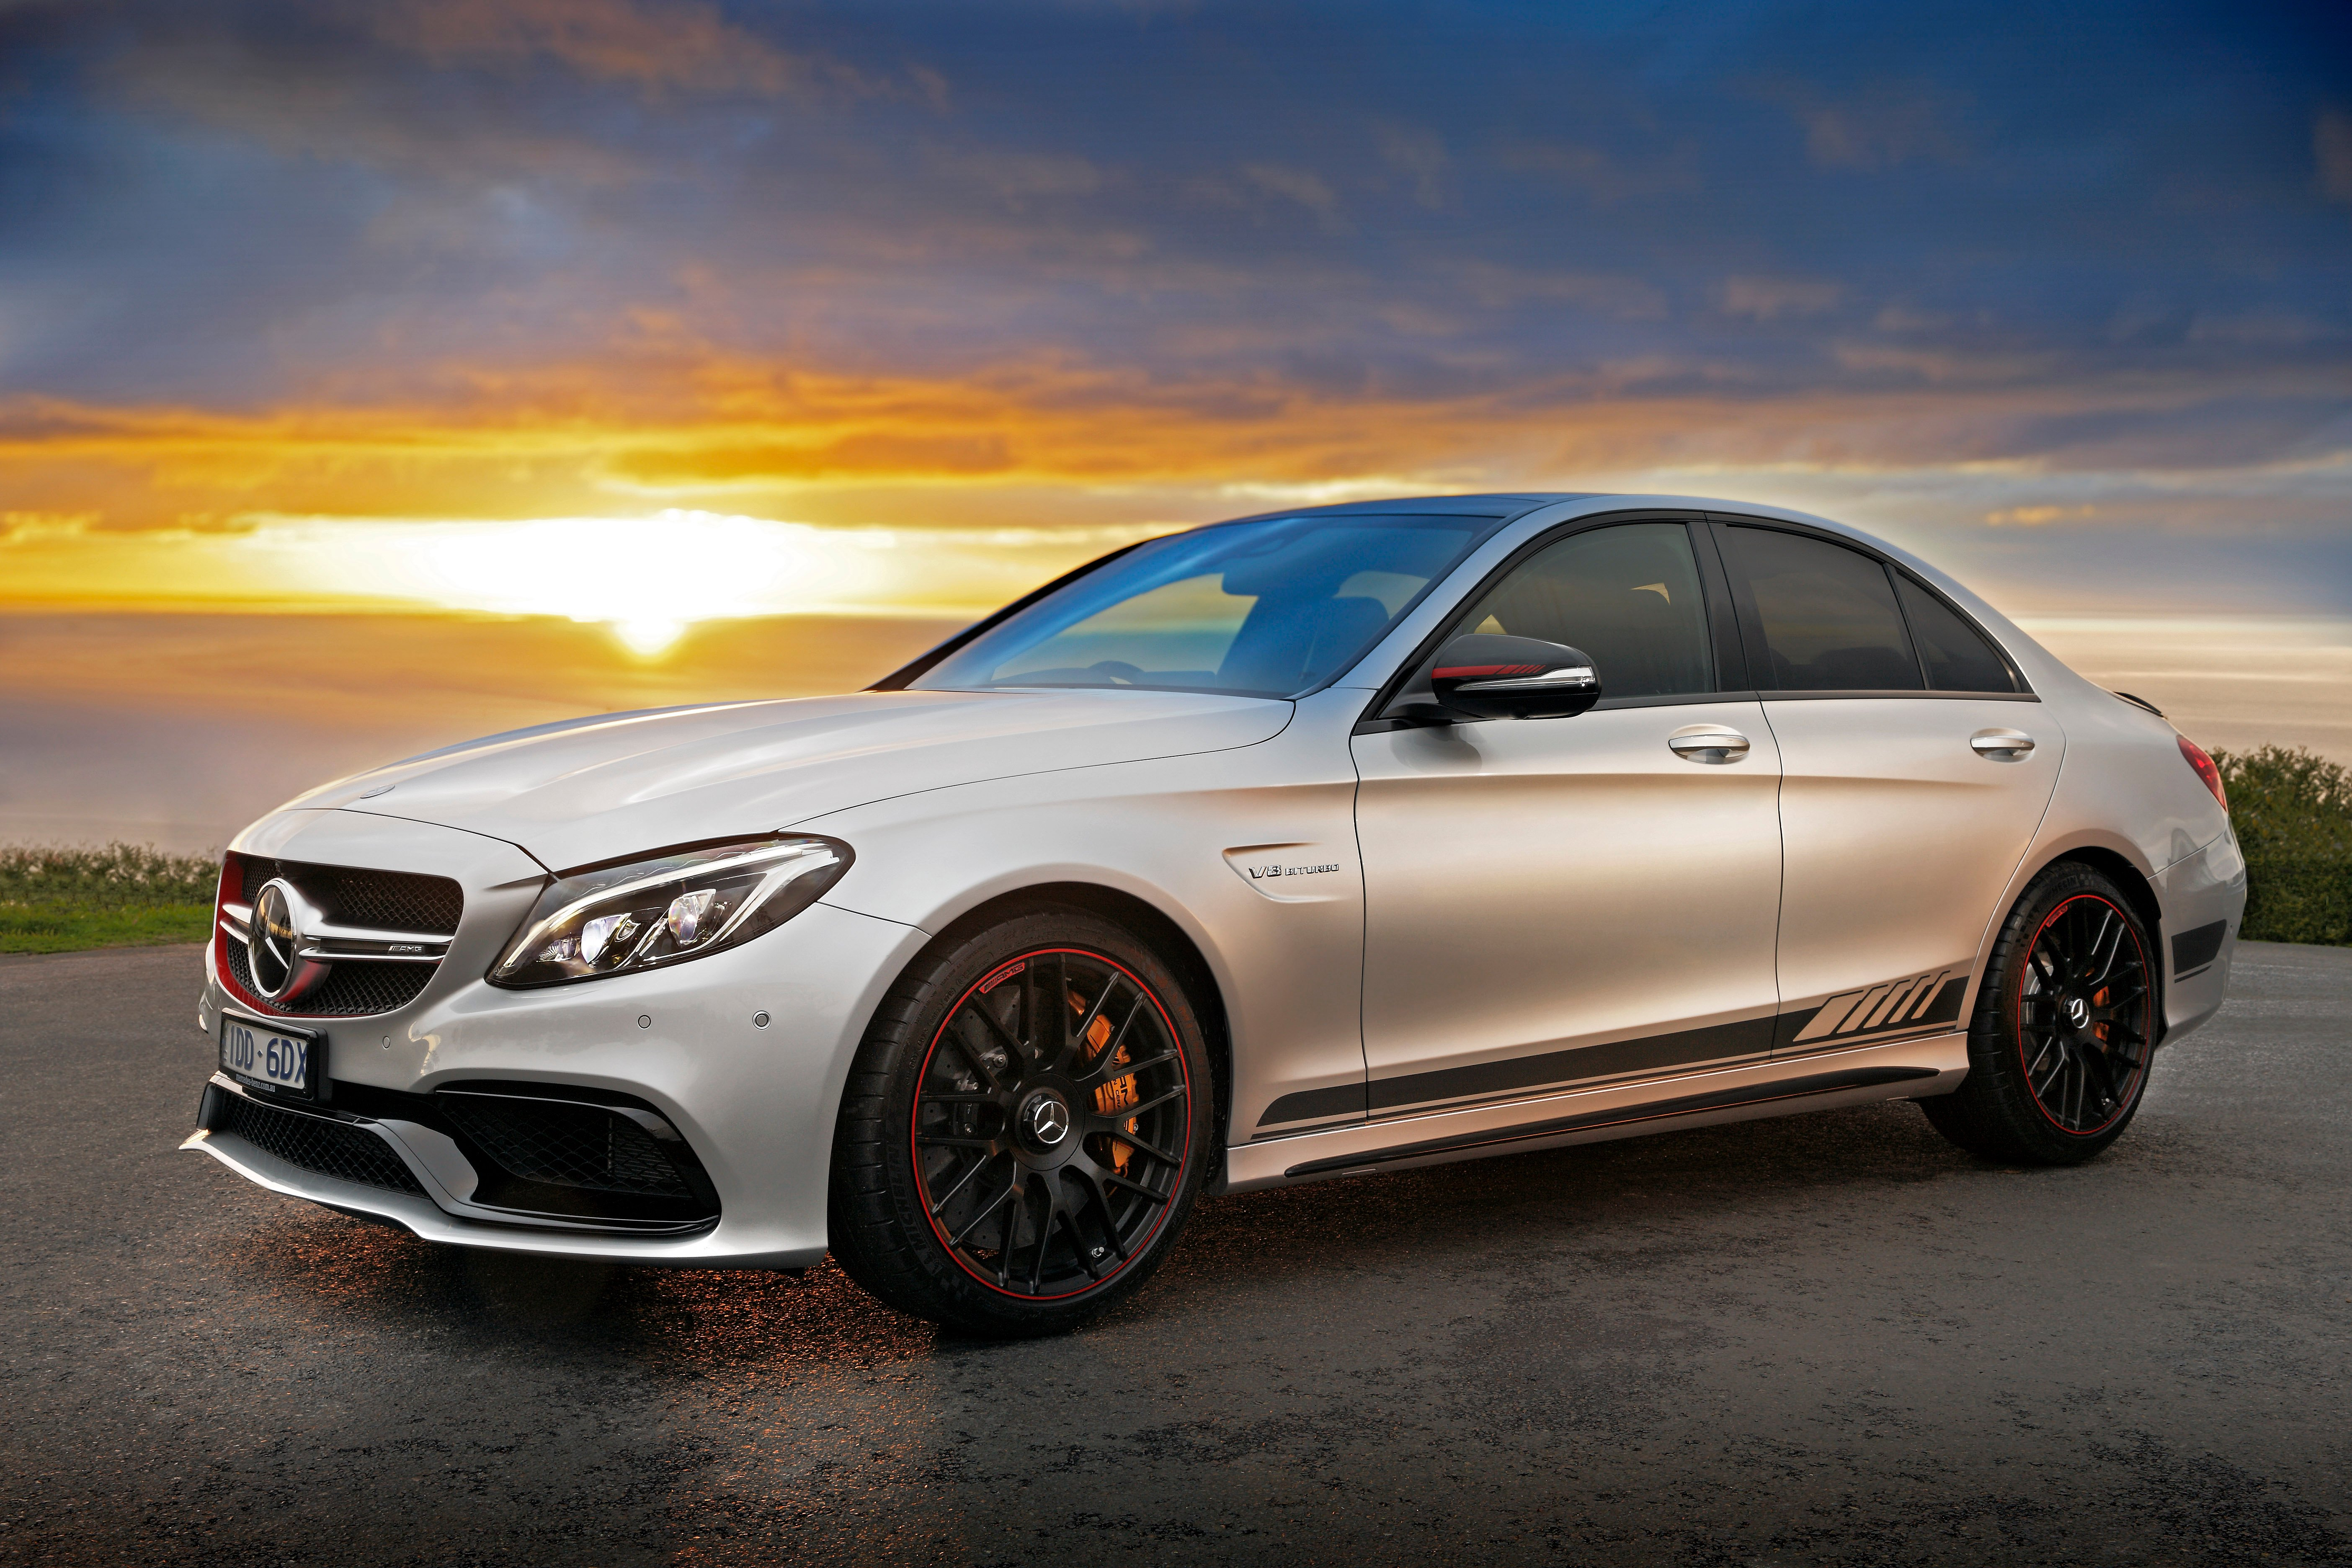 Mercedes Suv 350 >> 2015 Mercedes-AMG C63 S Review - photos | CarAdvice